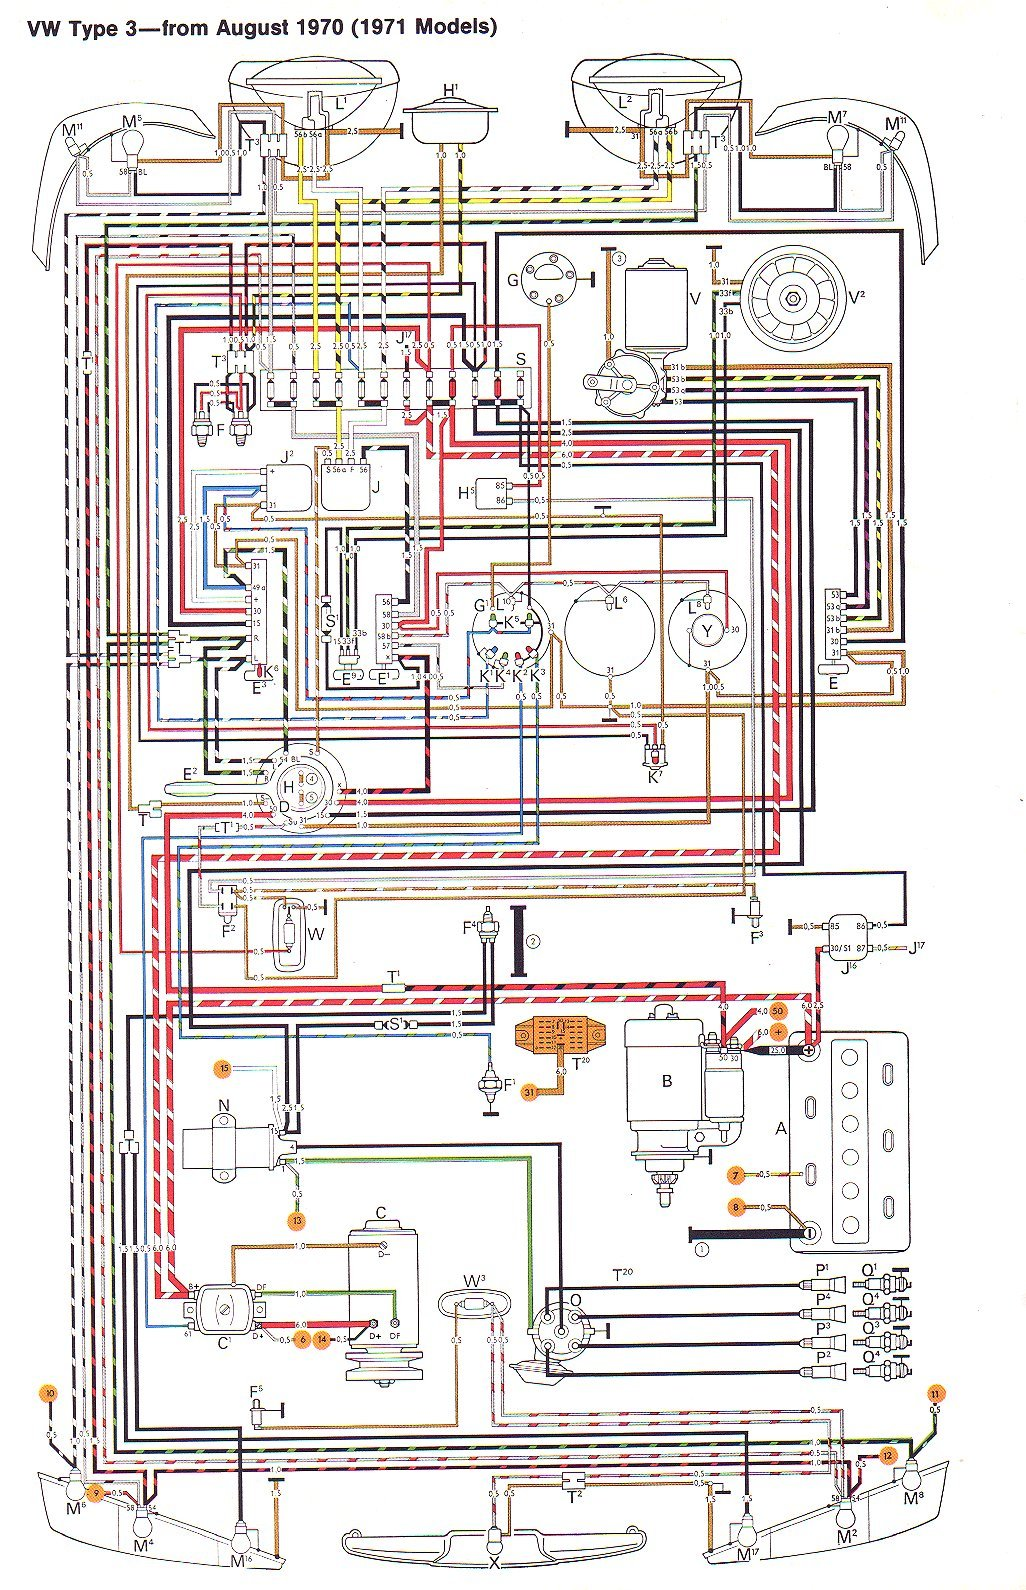 Skoda Start Wiring Diagram Wire Data Schema Diagrams Vw Type 3 Rh Hallvw Clara Net Way Switch